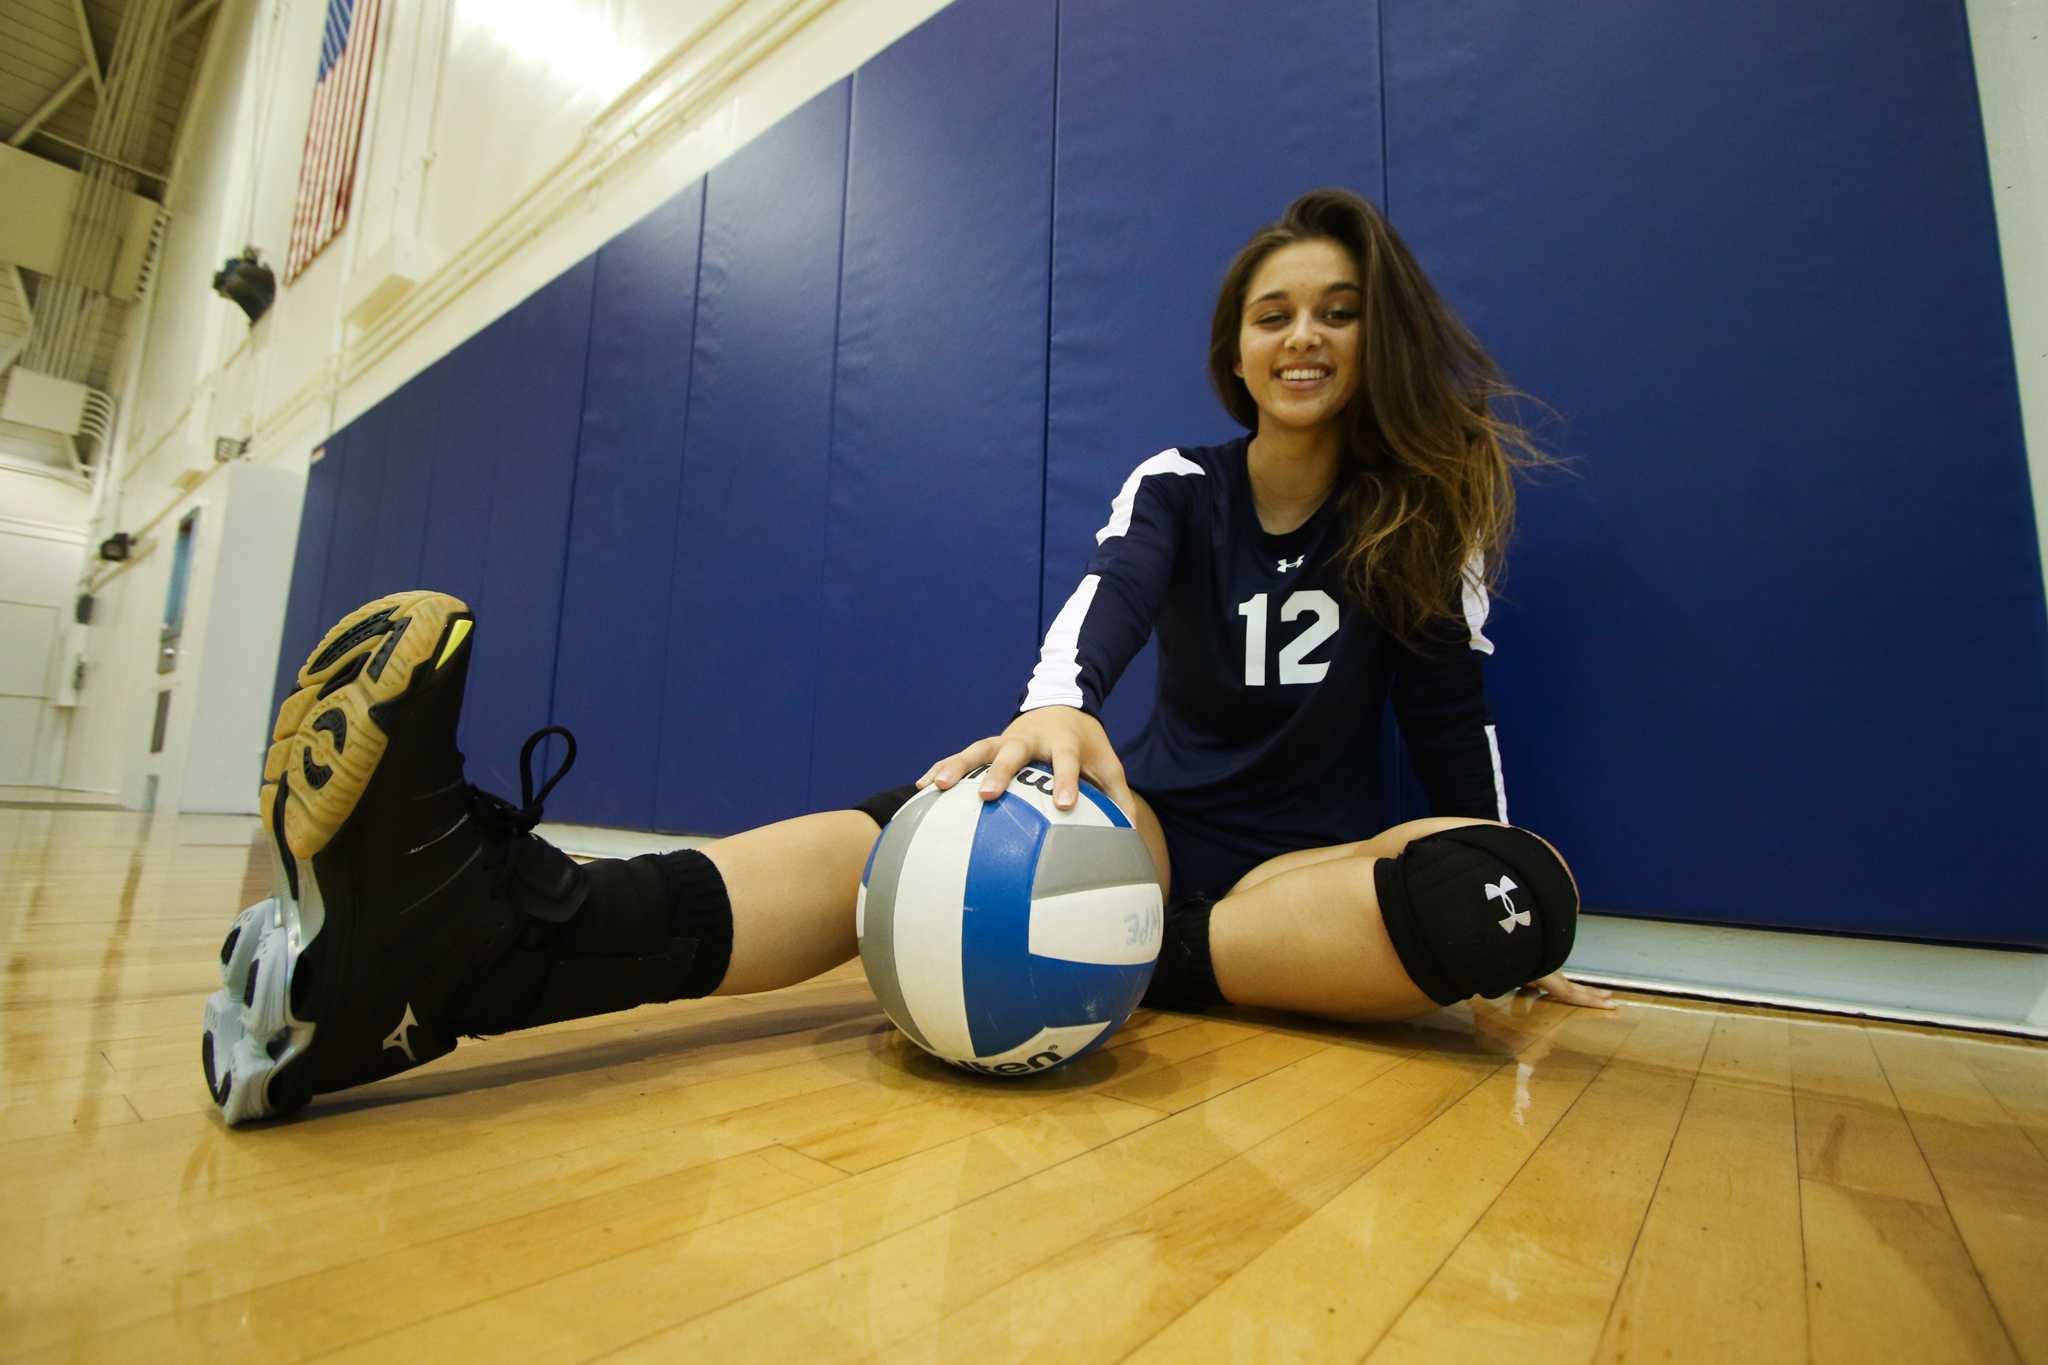 Freshman volleyball player shines in her first season as a Warrior